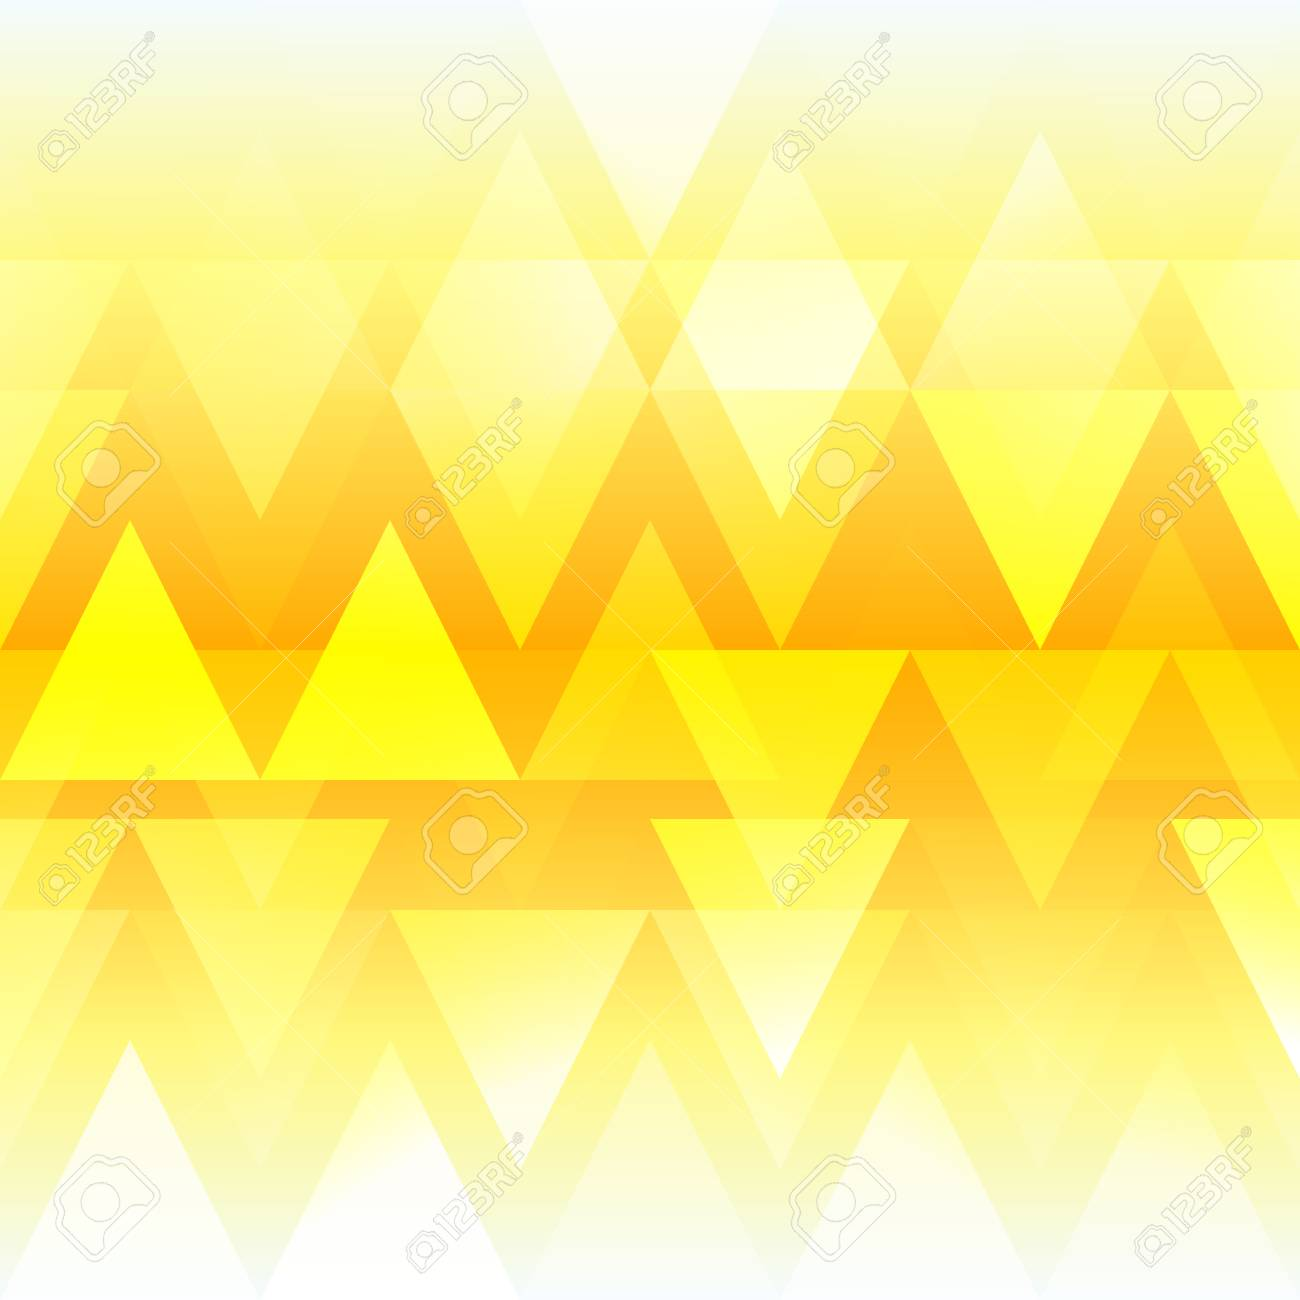 Abstract Bright Background Illustration For Modern Design Yellow Orange And White Colors